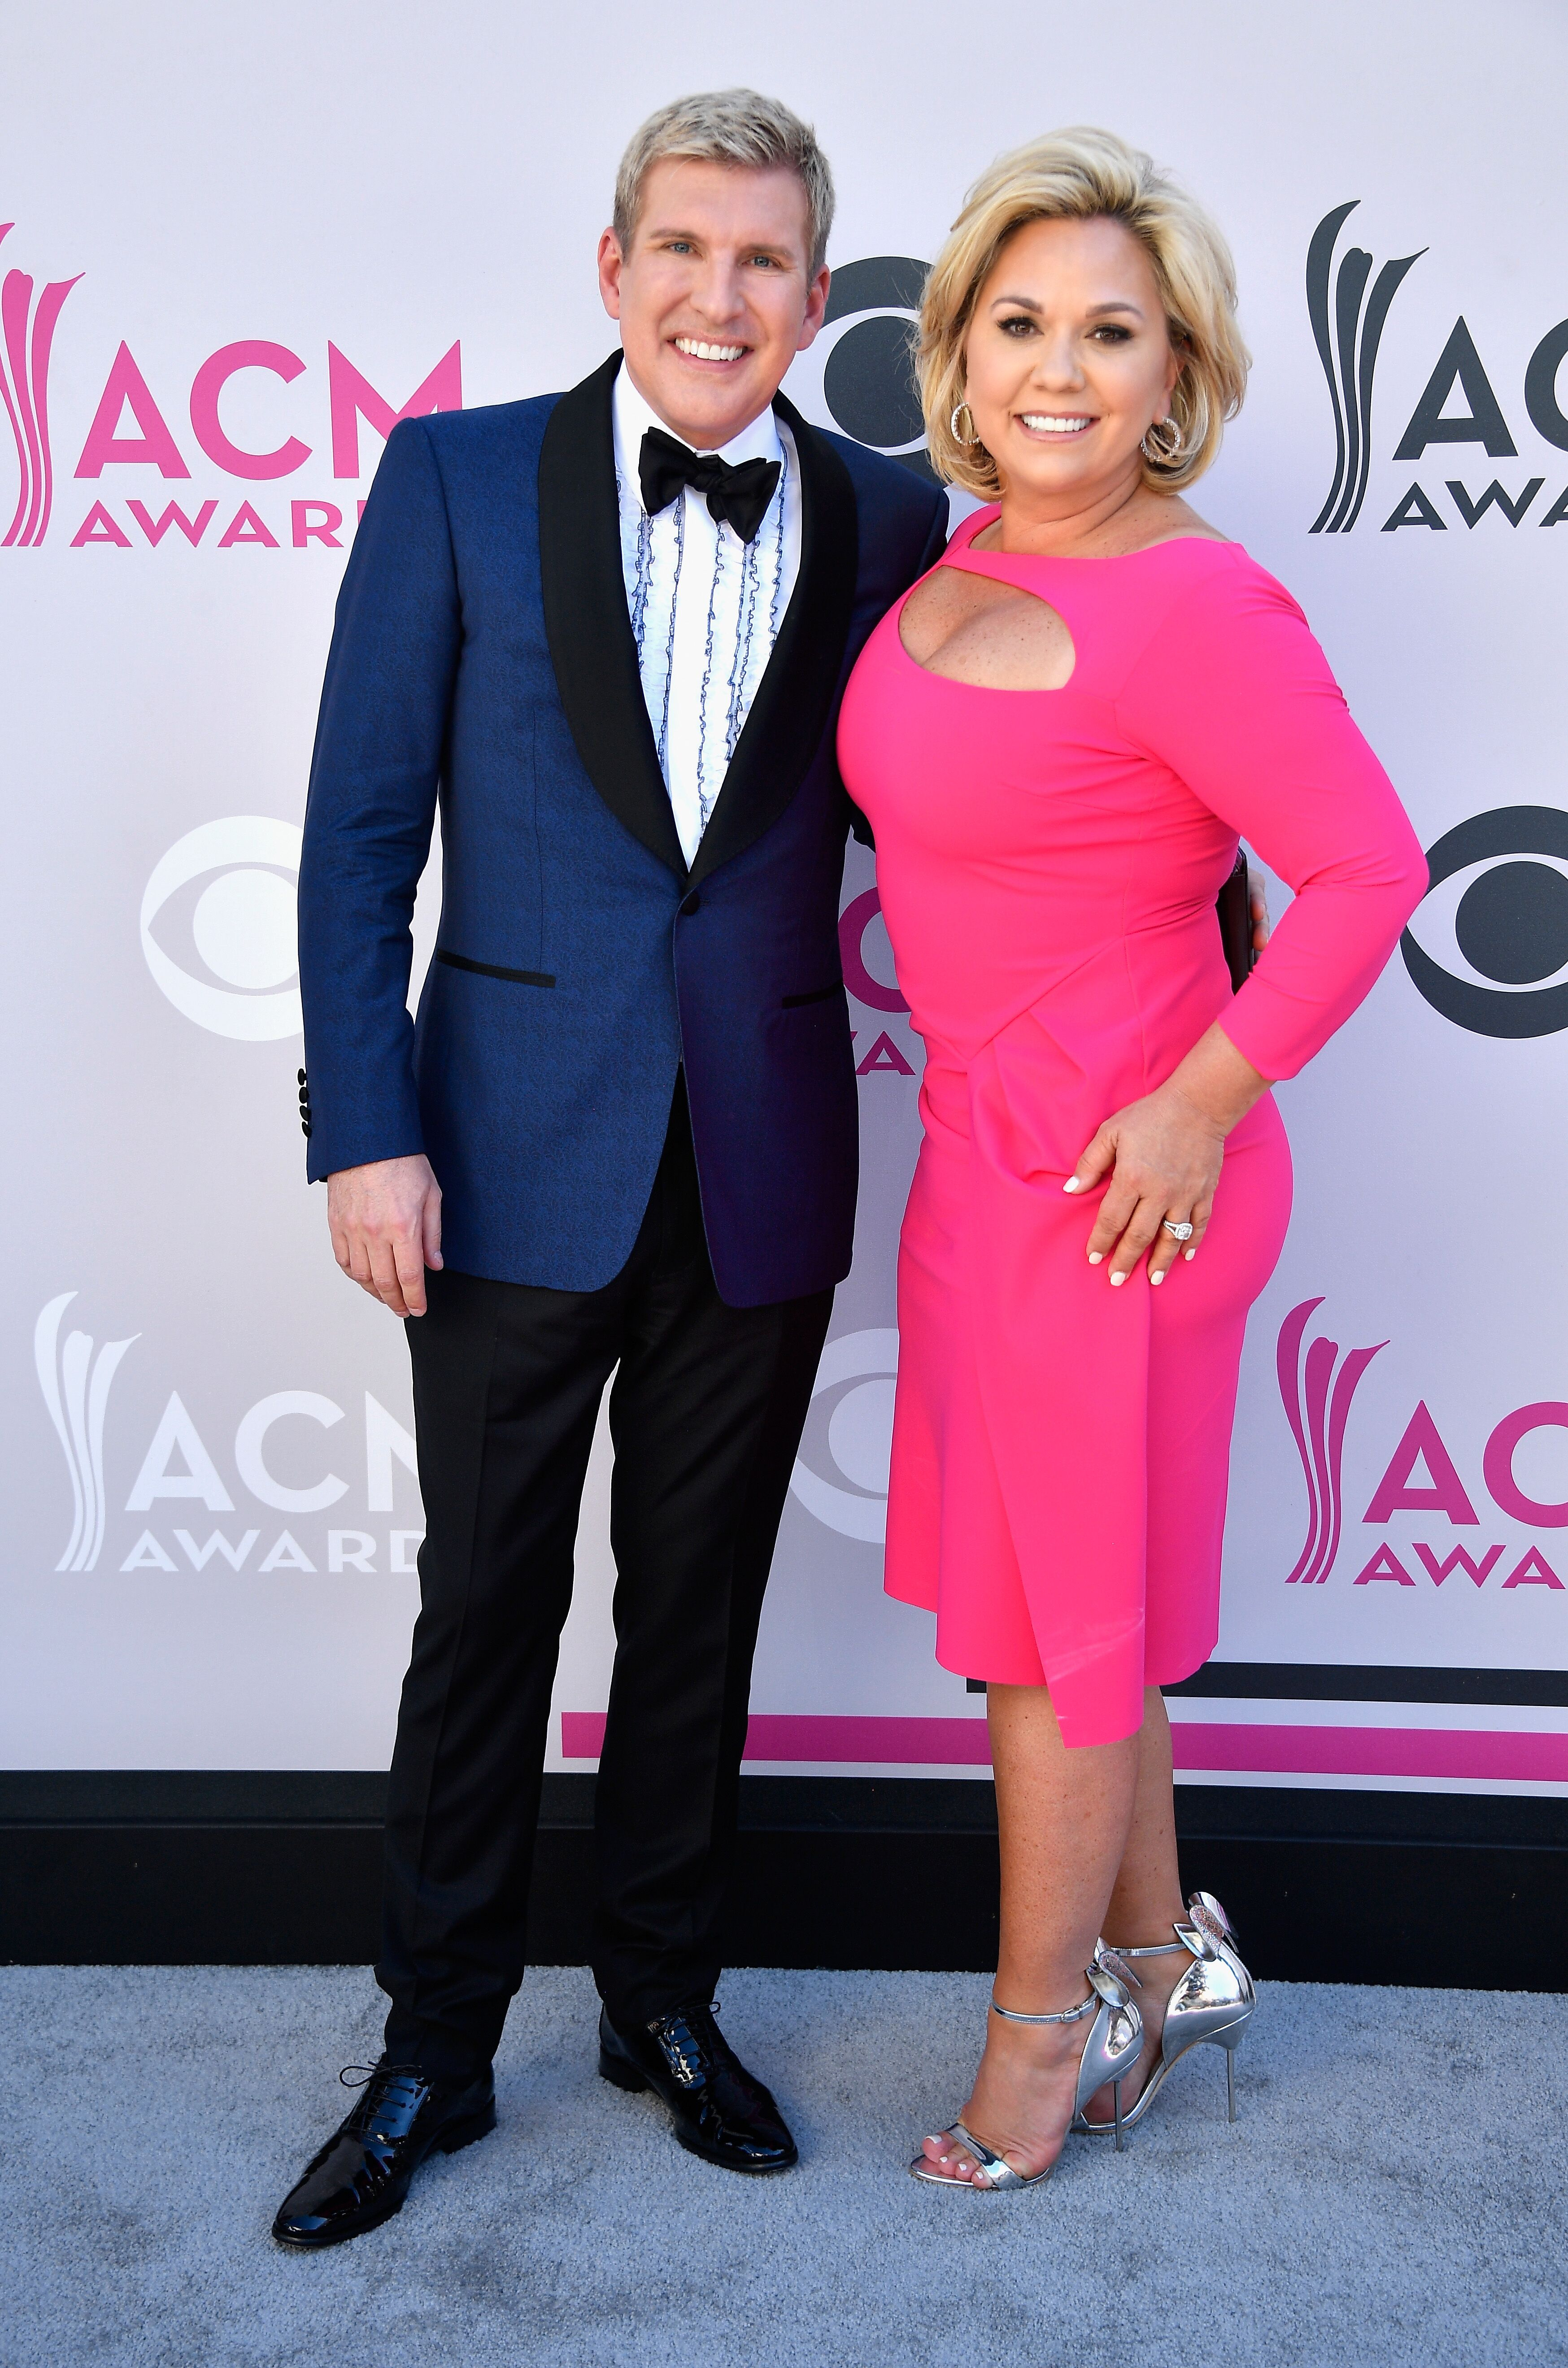 TV stars Todd and Julie Chrisley attend the 52nd Academy Of Country Music Awards at Toshiba Plaza on April 2, 2017 in Las Vegas, Nevada. | Source: Getty Images